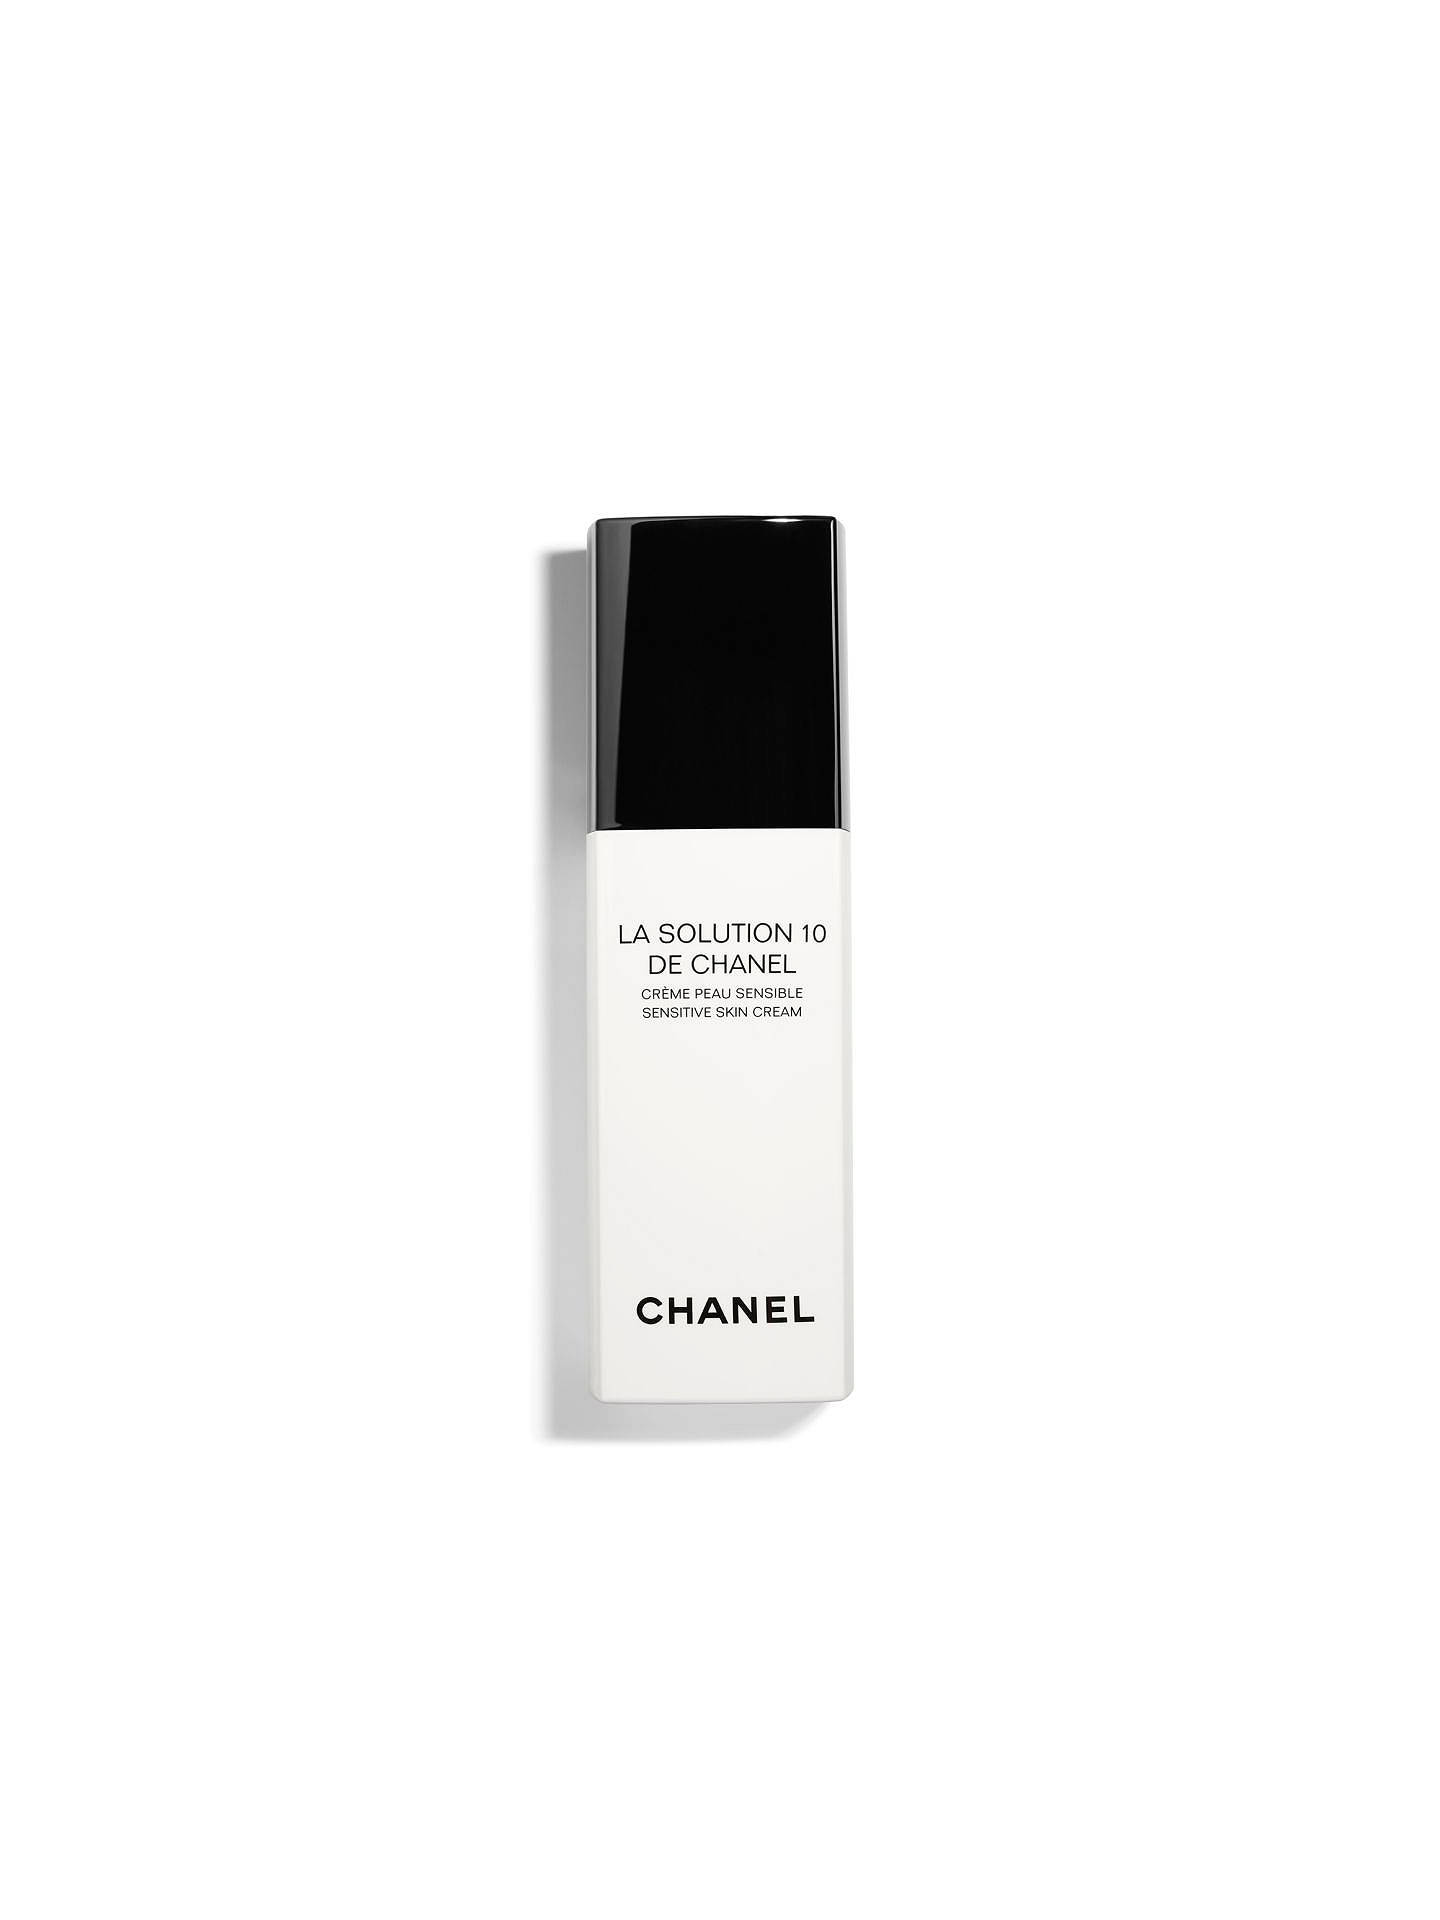 BuyCHANEL LA SOLUTION 10 DE CHANEL Sensitive Skin Cream Pump Bottle Online at johnlewis.com